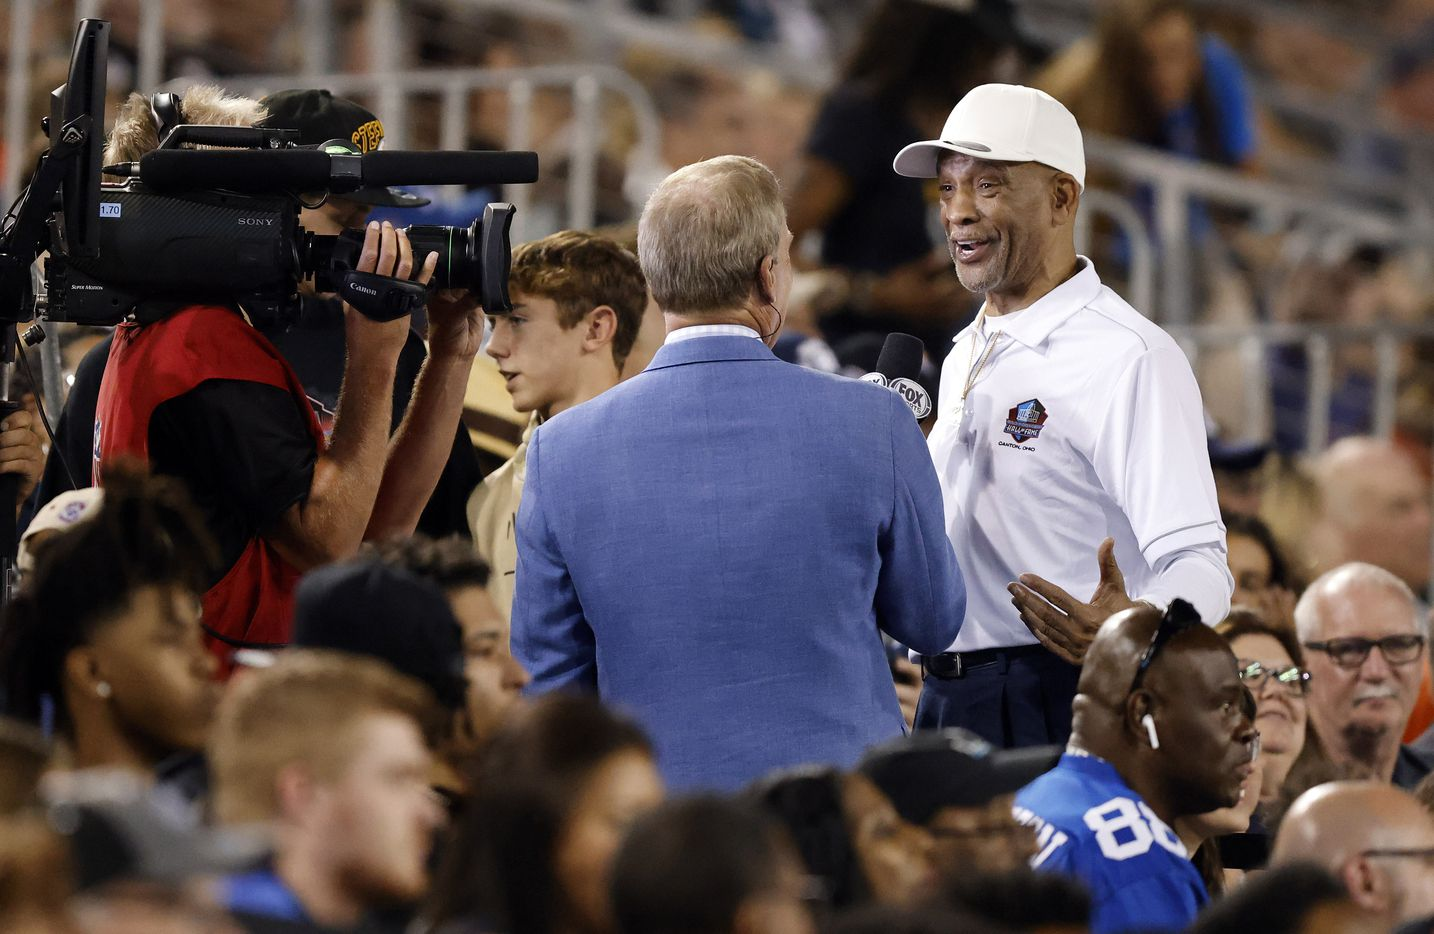 Dallas Cowboys Pro Football Hall of Fame inductee Drew Pearson (right) laughs with a FOX Sports broadcaster during the Cowboys Steelers preseason game at Tom Benson Hall of Fame Stadium in Canton, Ohio, Thursday, August 5, 2021. (Tom Fox/The Dallas Morning News)